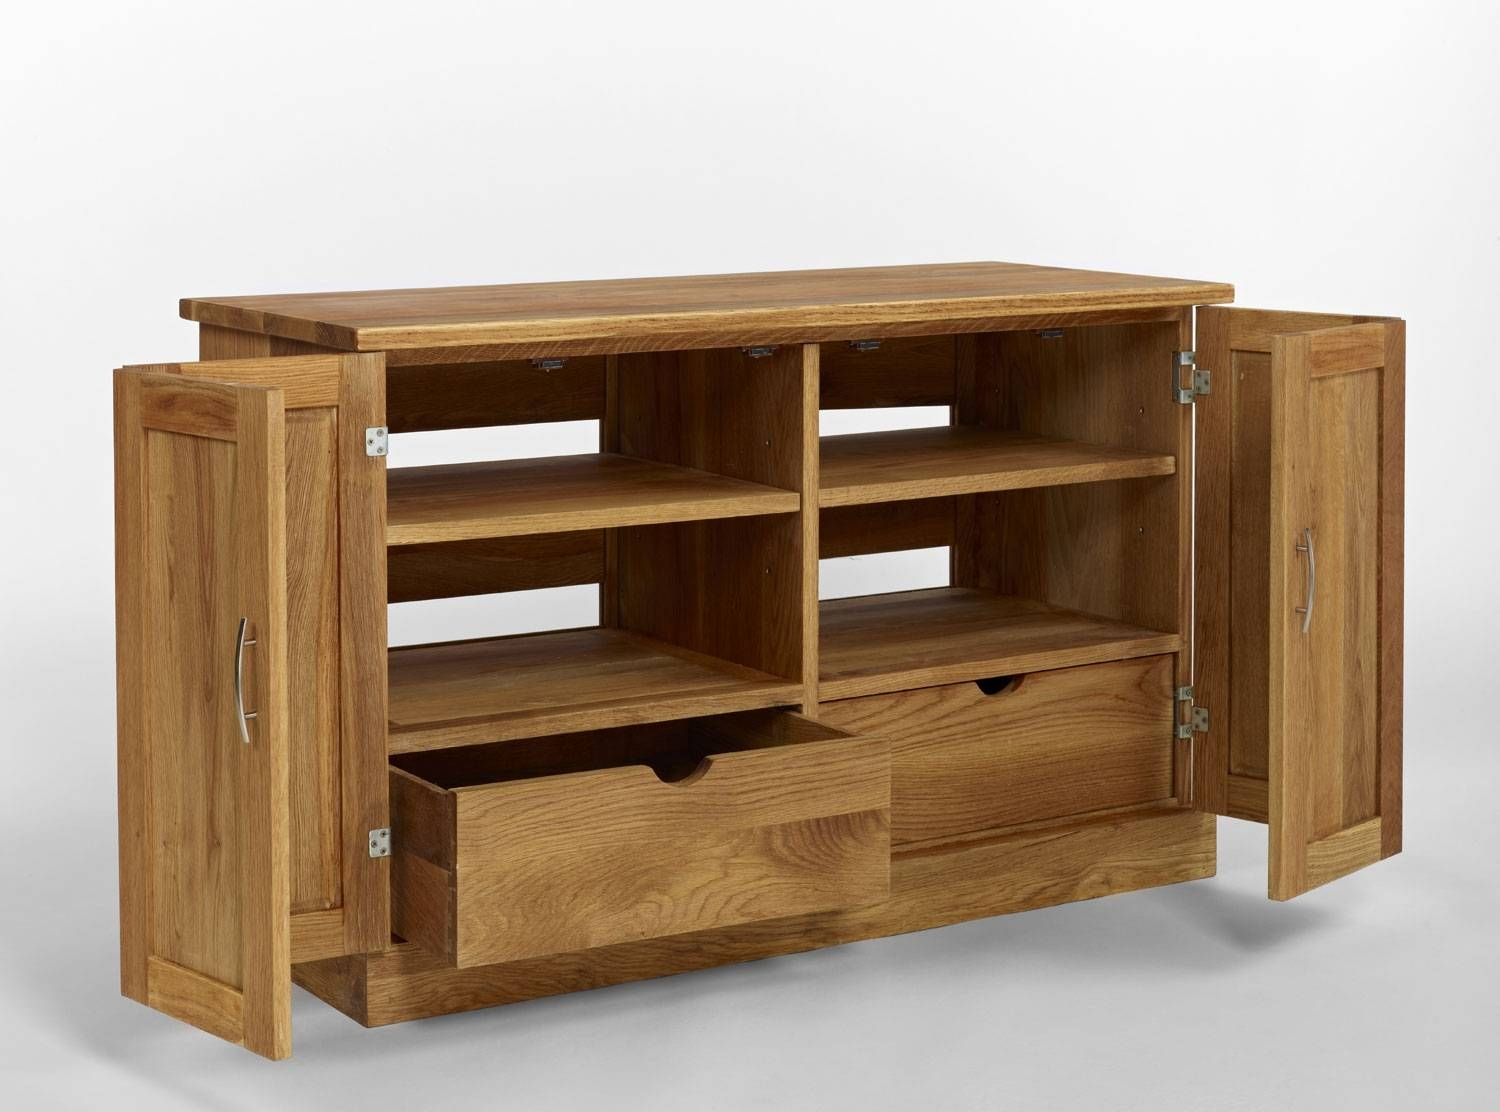 Modern Tv Cabinets Wonderful 19 Precious Contemporary Tv Stands throughout Contemporary Oak Tv Stands (Image 6 of 15)